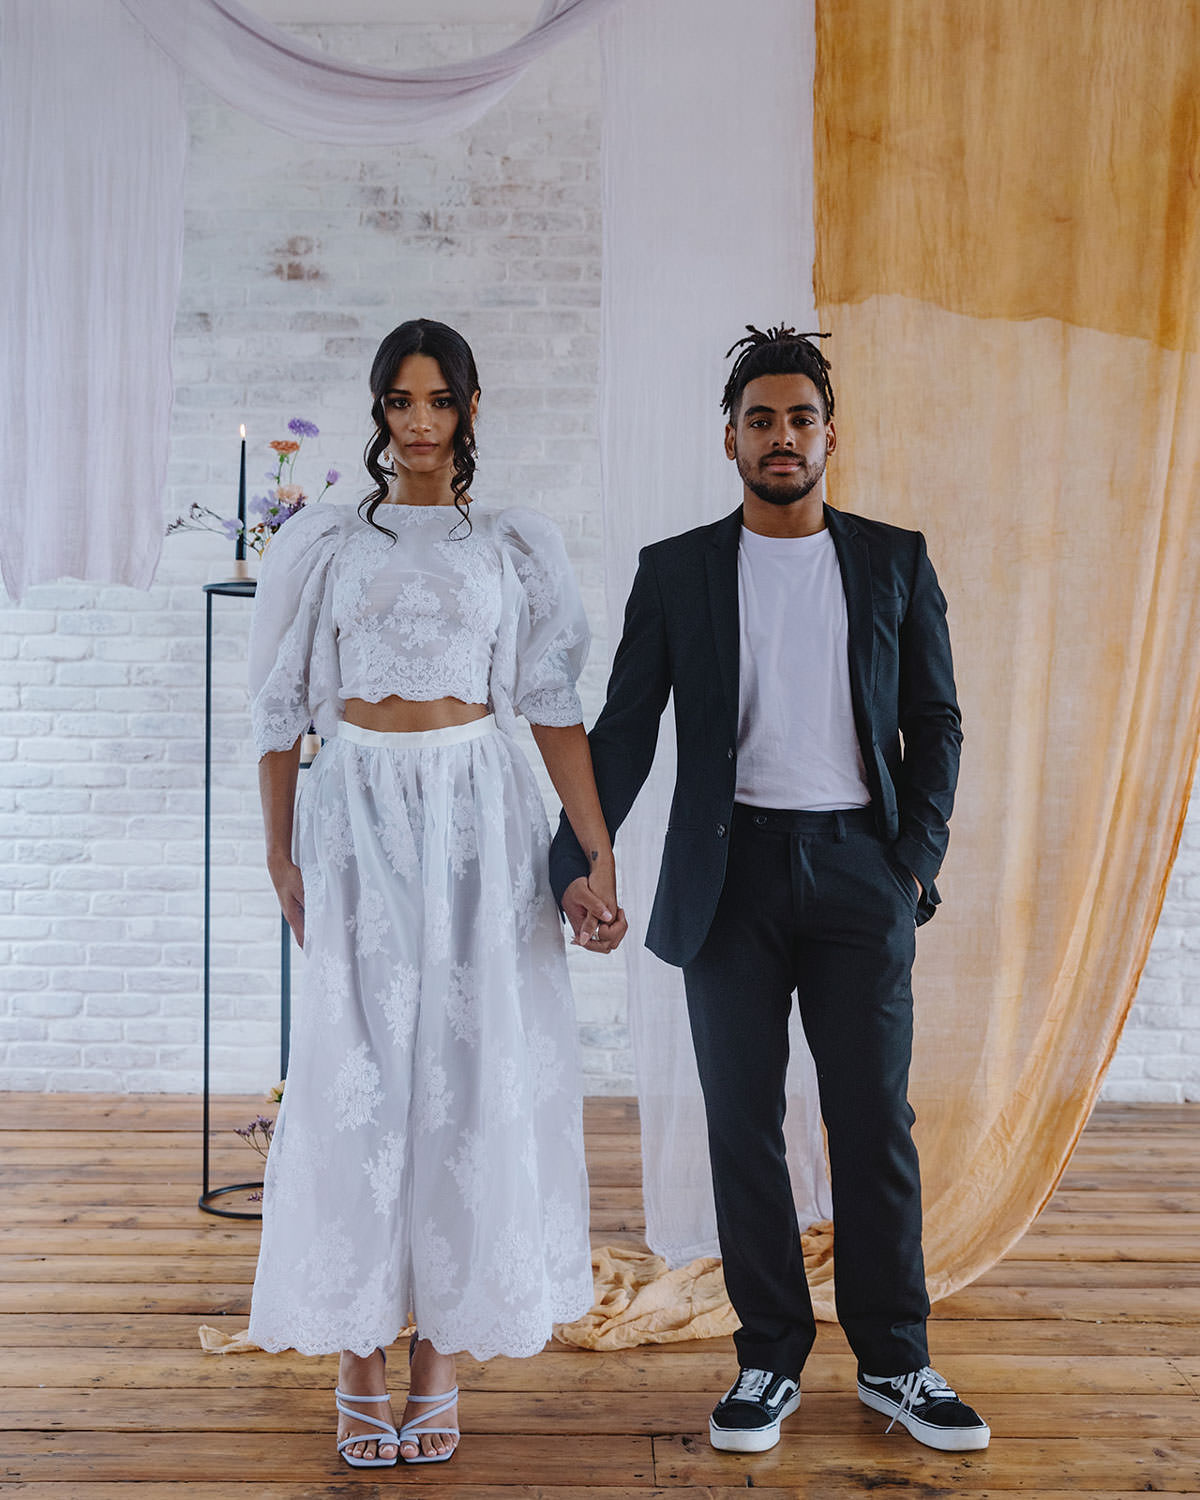 modern bridal styling with an Industrial , loft style backdrop. A couple hold hands. The bride is wearing a lace Velvet Johnston dress and the groom is wearing a white tee and tailored blackout.